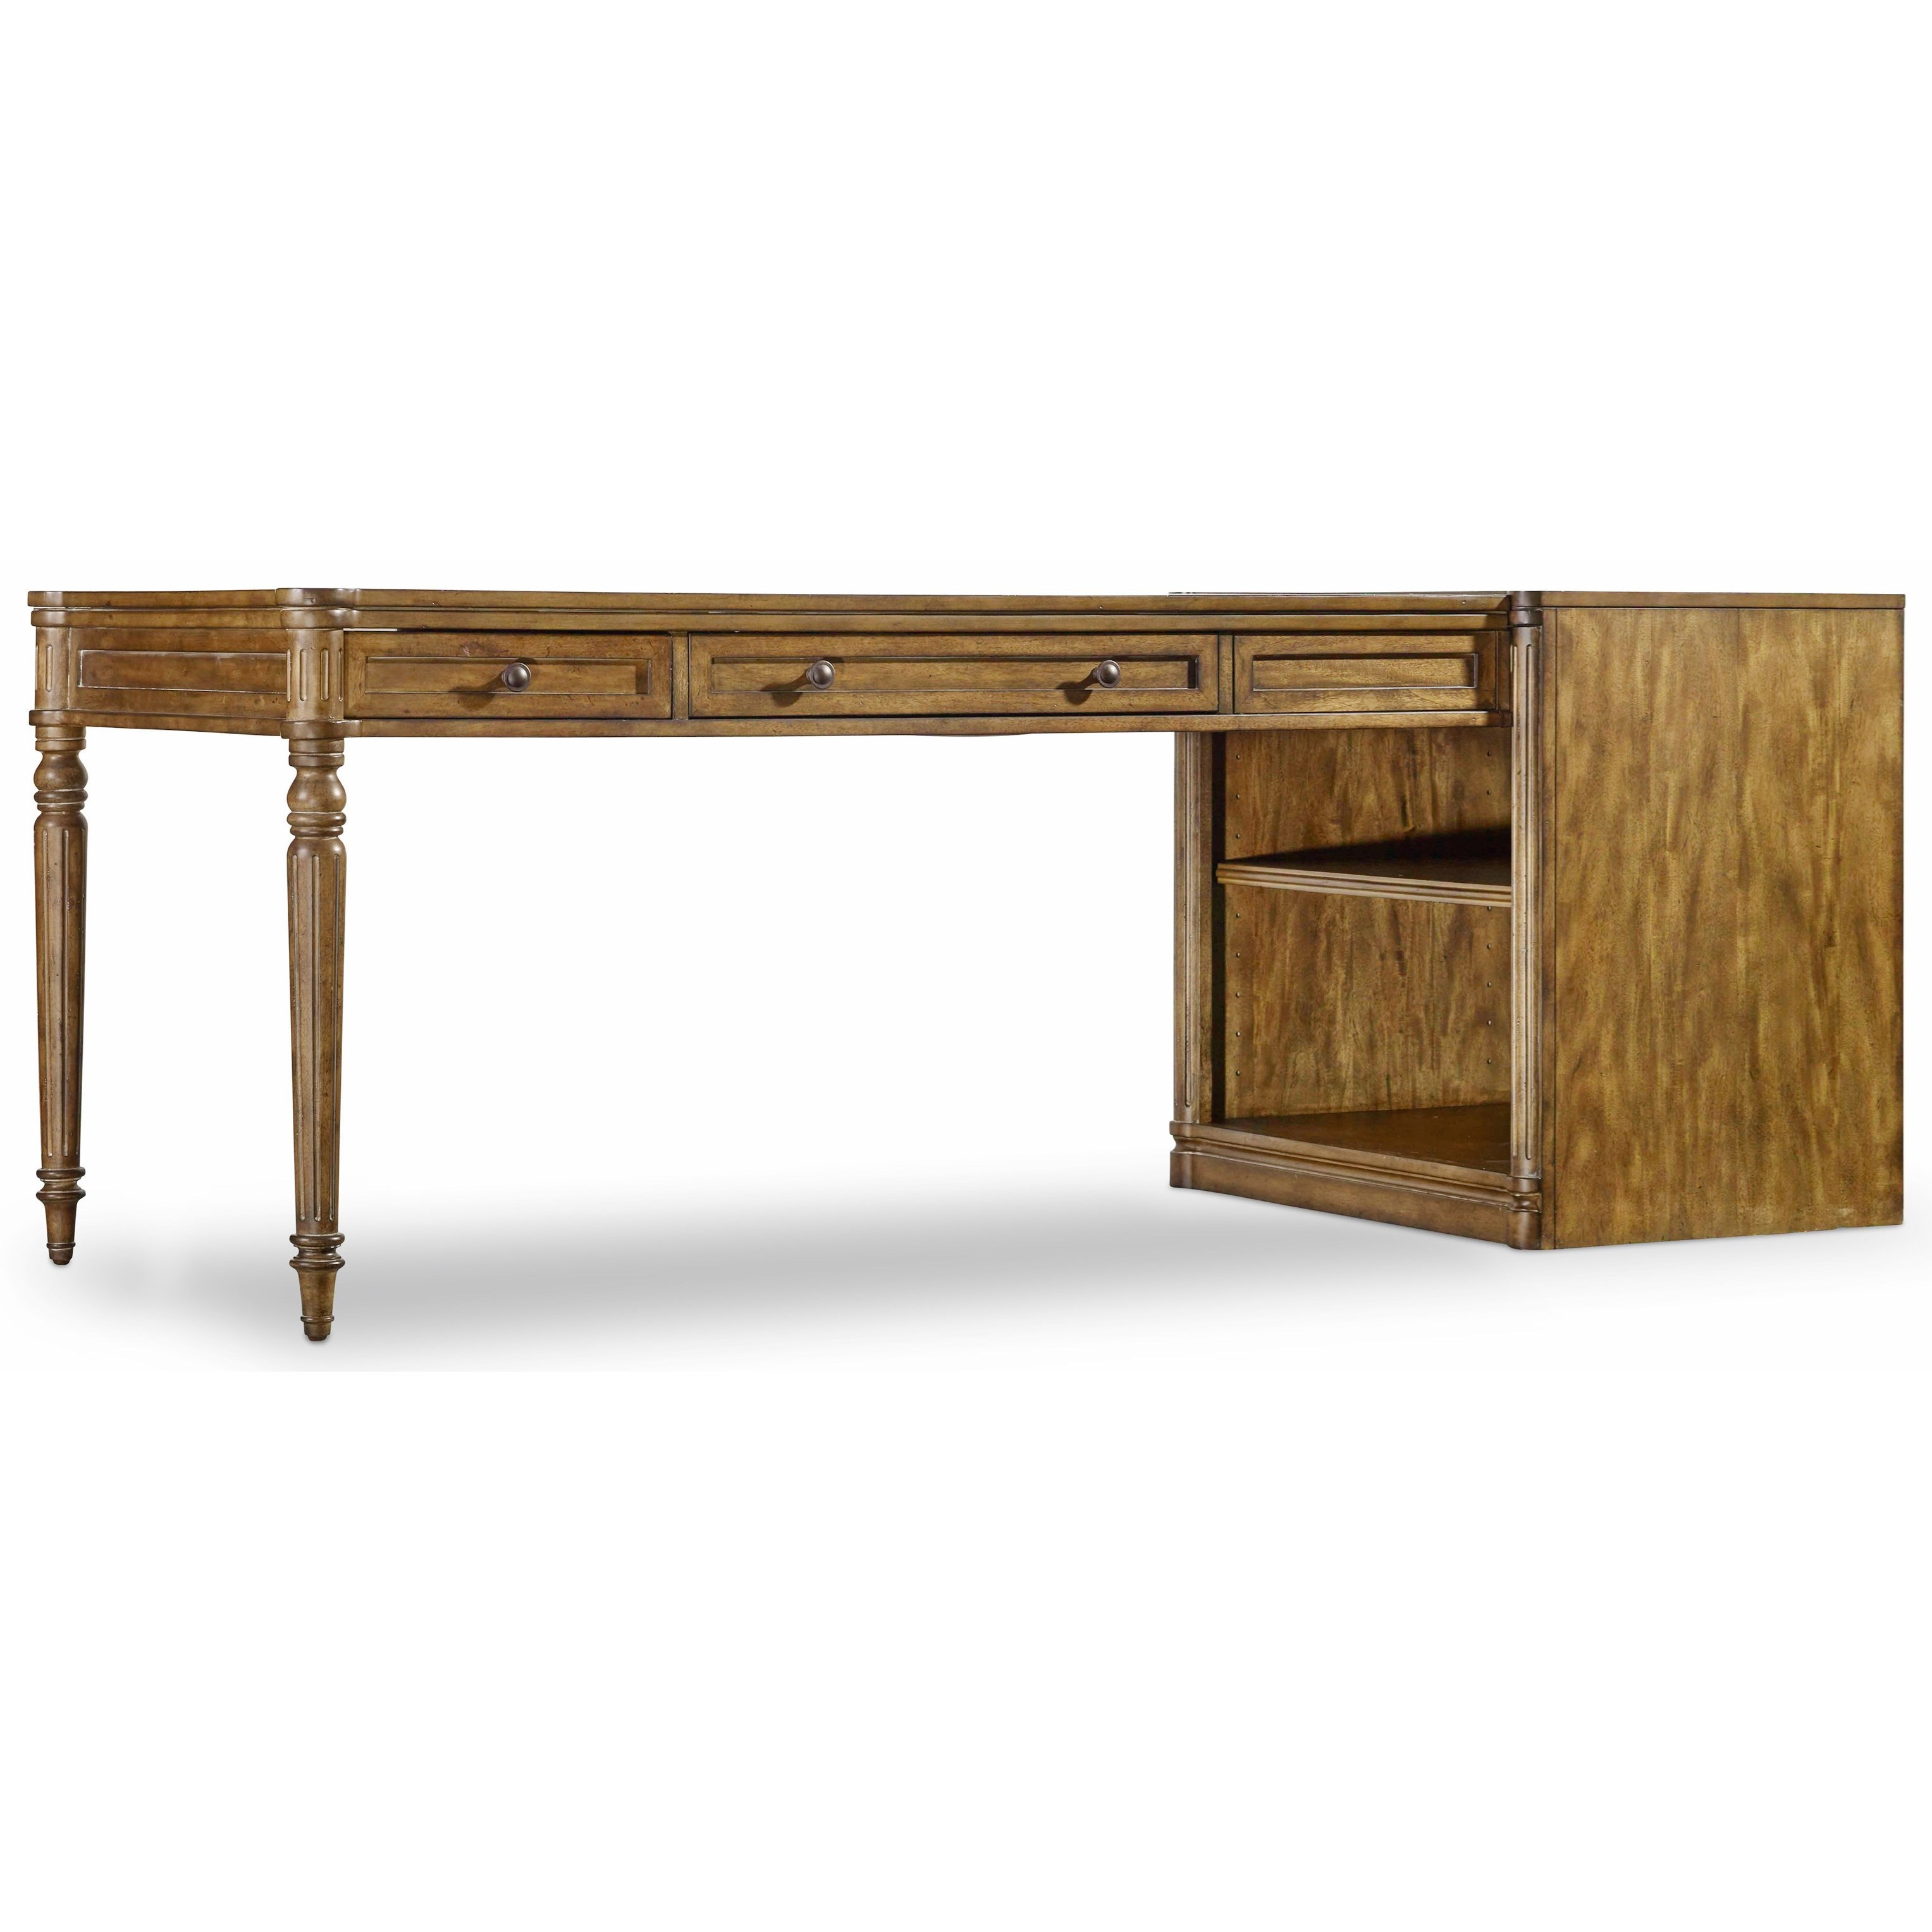 Hooker Furniture Saint Armand Peninsula Desk - Item Number: 5600-70424